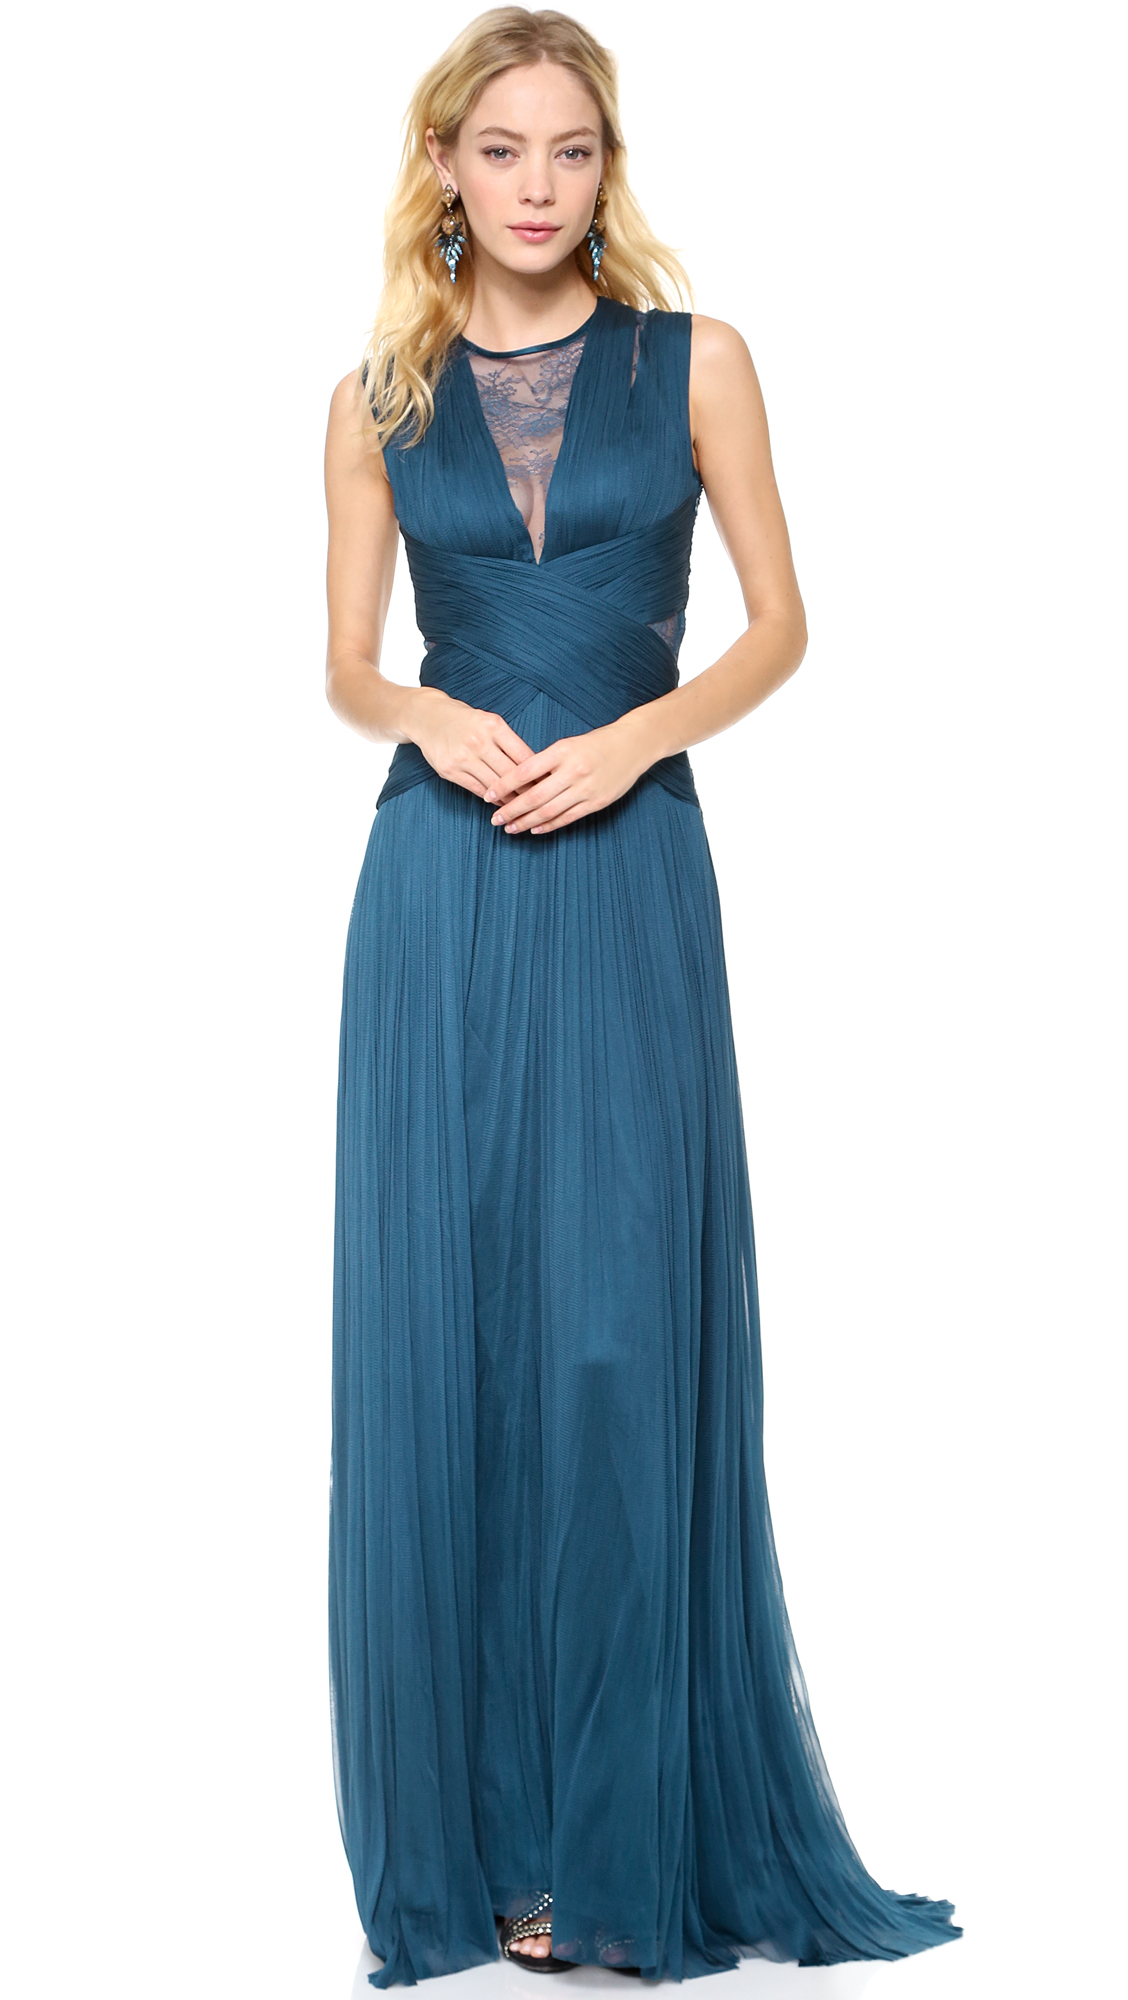 Catherine Deane Rossa Gown in Blue - Lyst